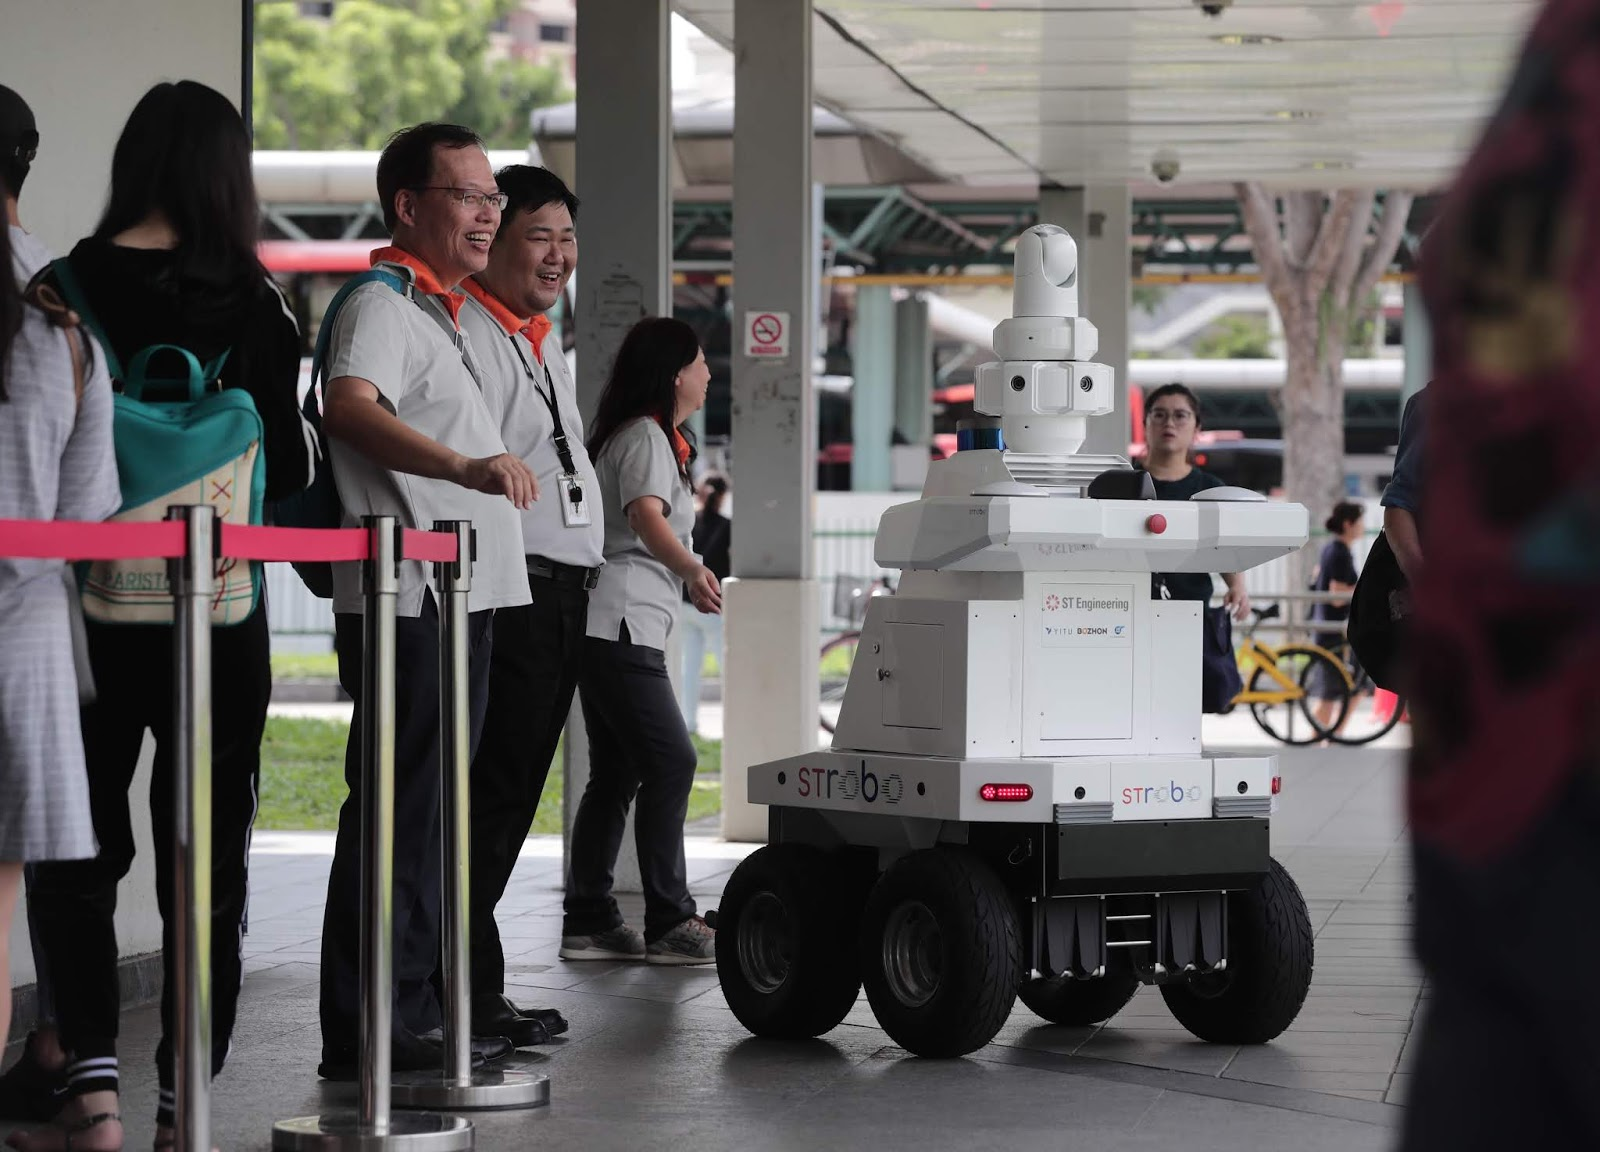 LTA is exploring the use of robotics to potentially complement the deployment of security officers in the future.